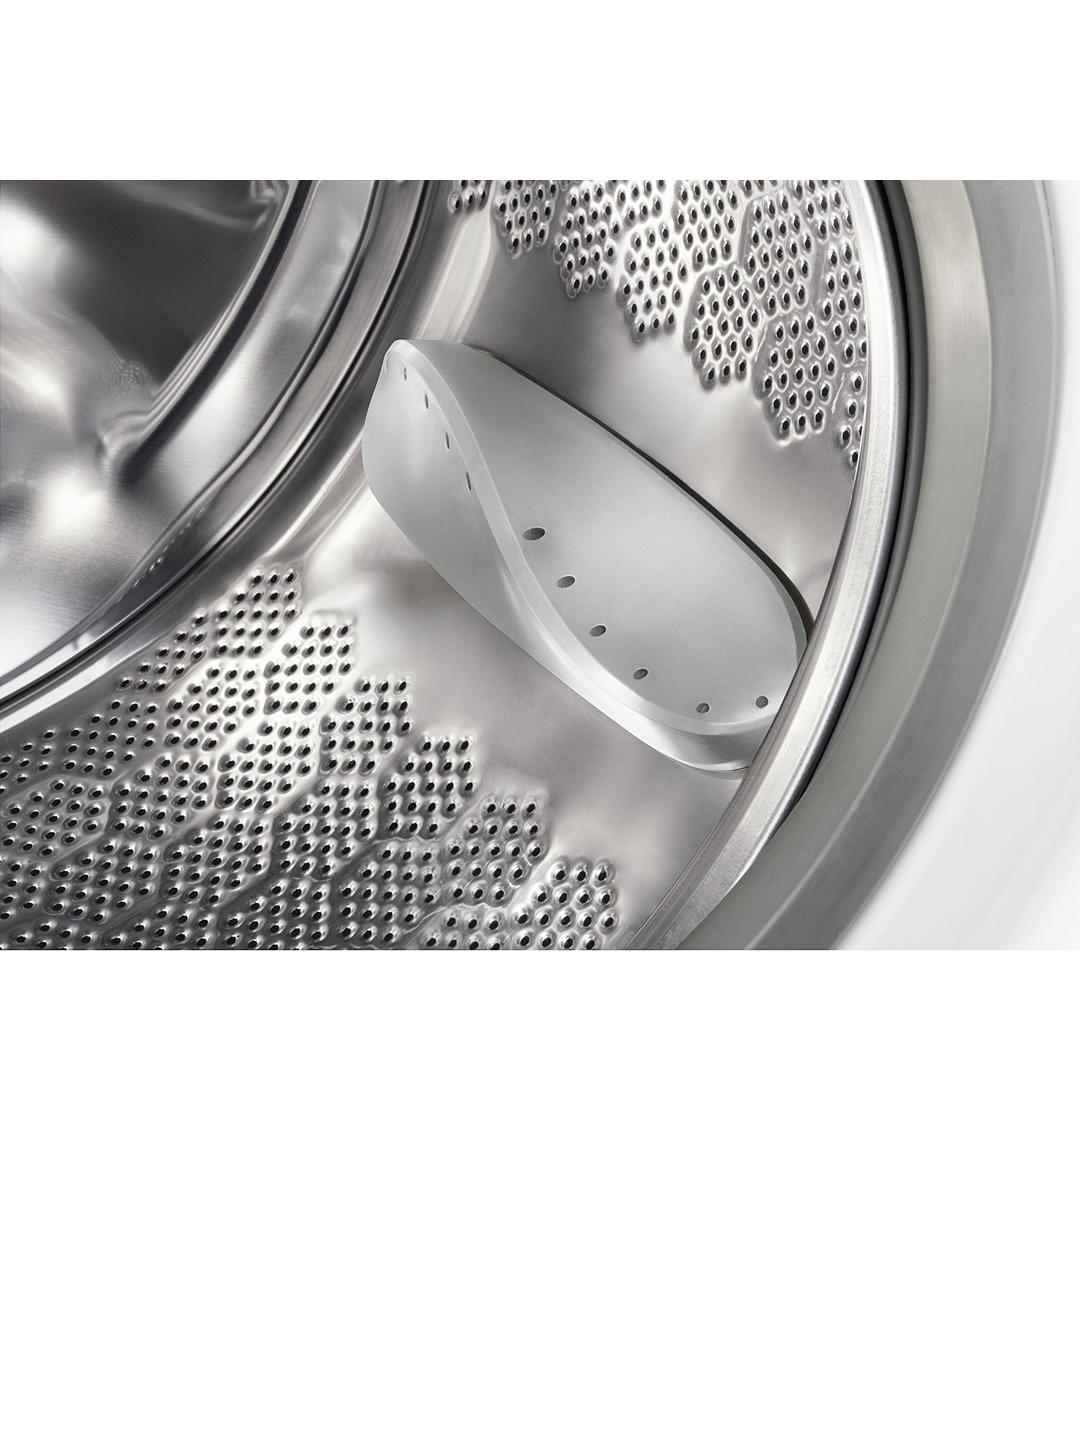 Buy Zanussi ZWF01483W Washing Machine, 10kg Load, A+++ Energy Rating, 1400rpm Spin, White Online at johnlewis.com